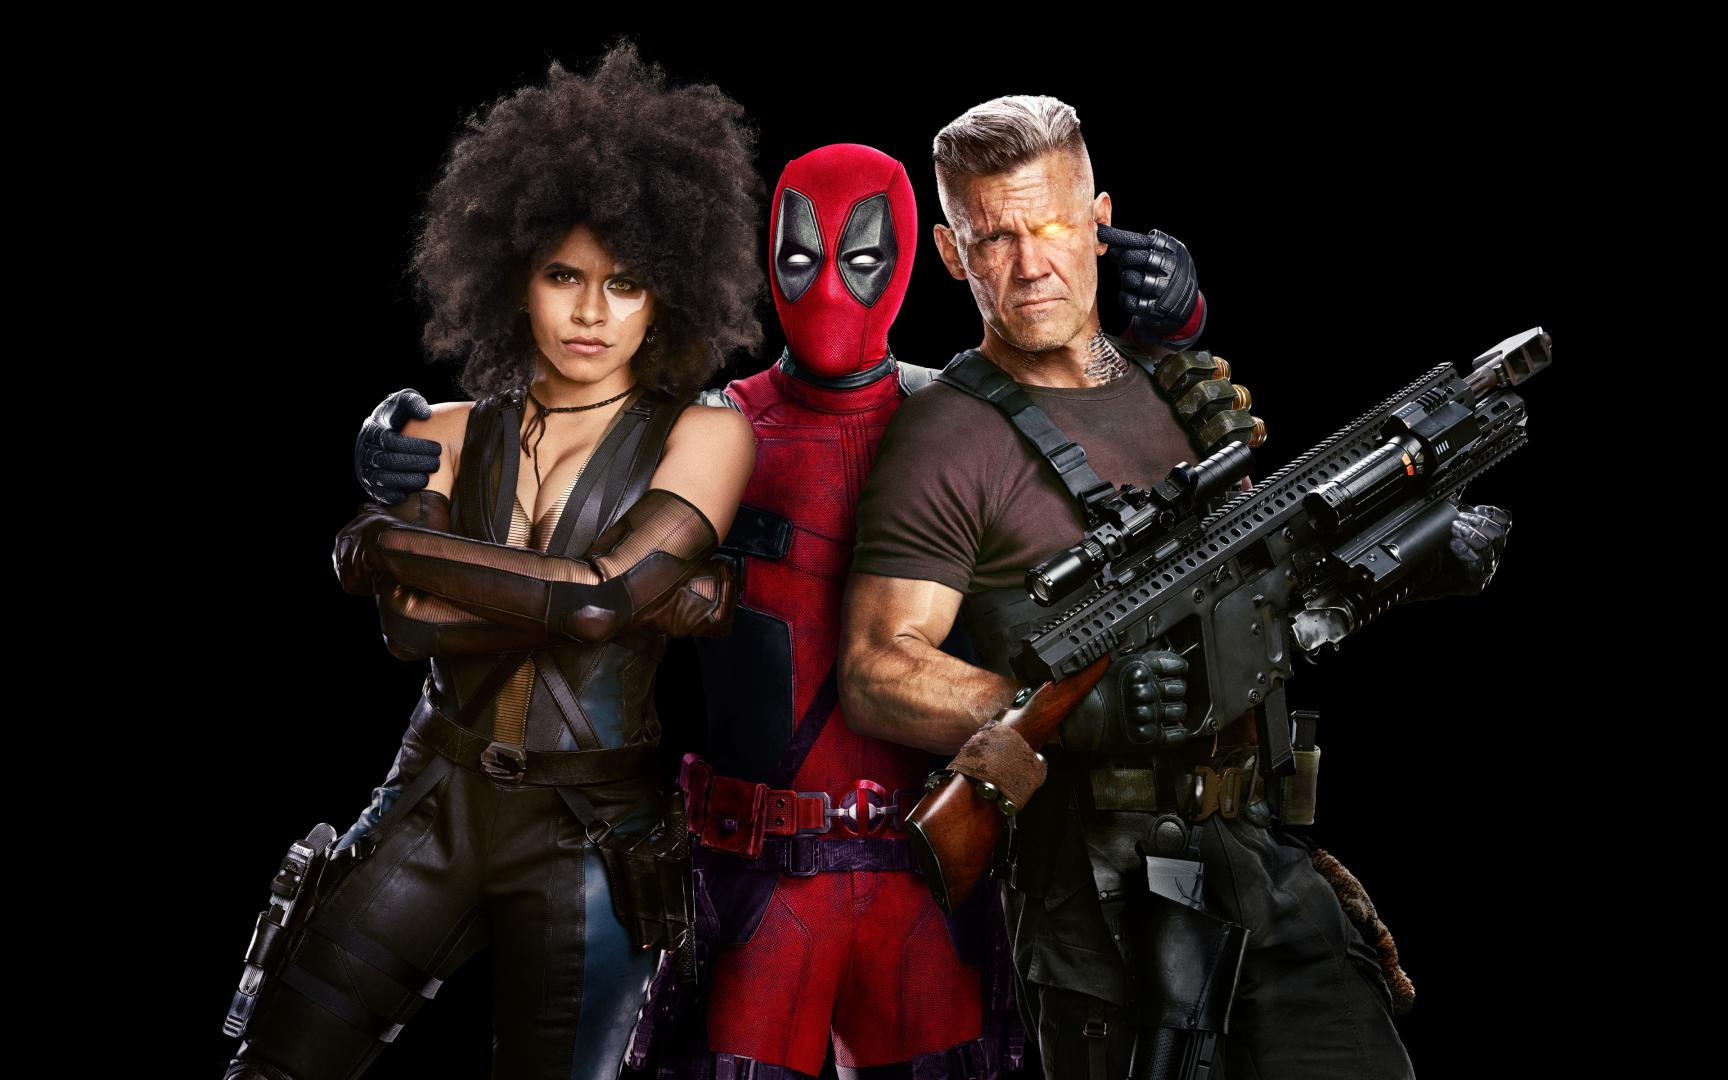 обои на телефон марвел андроид, Дэдпул 2, deadpool 2 wallpaper, 3840 на 2400 пикселей